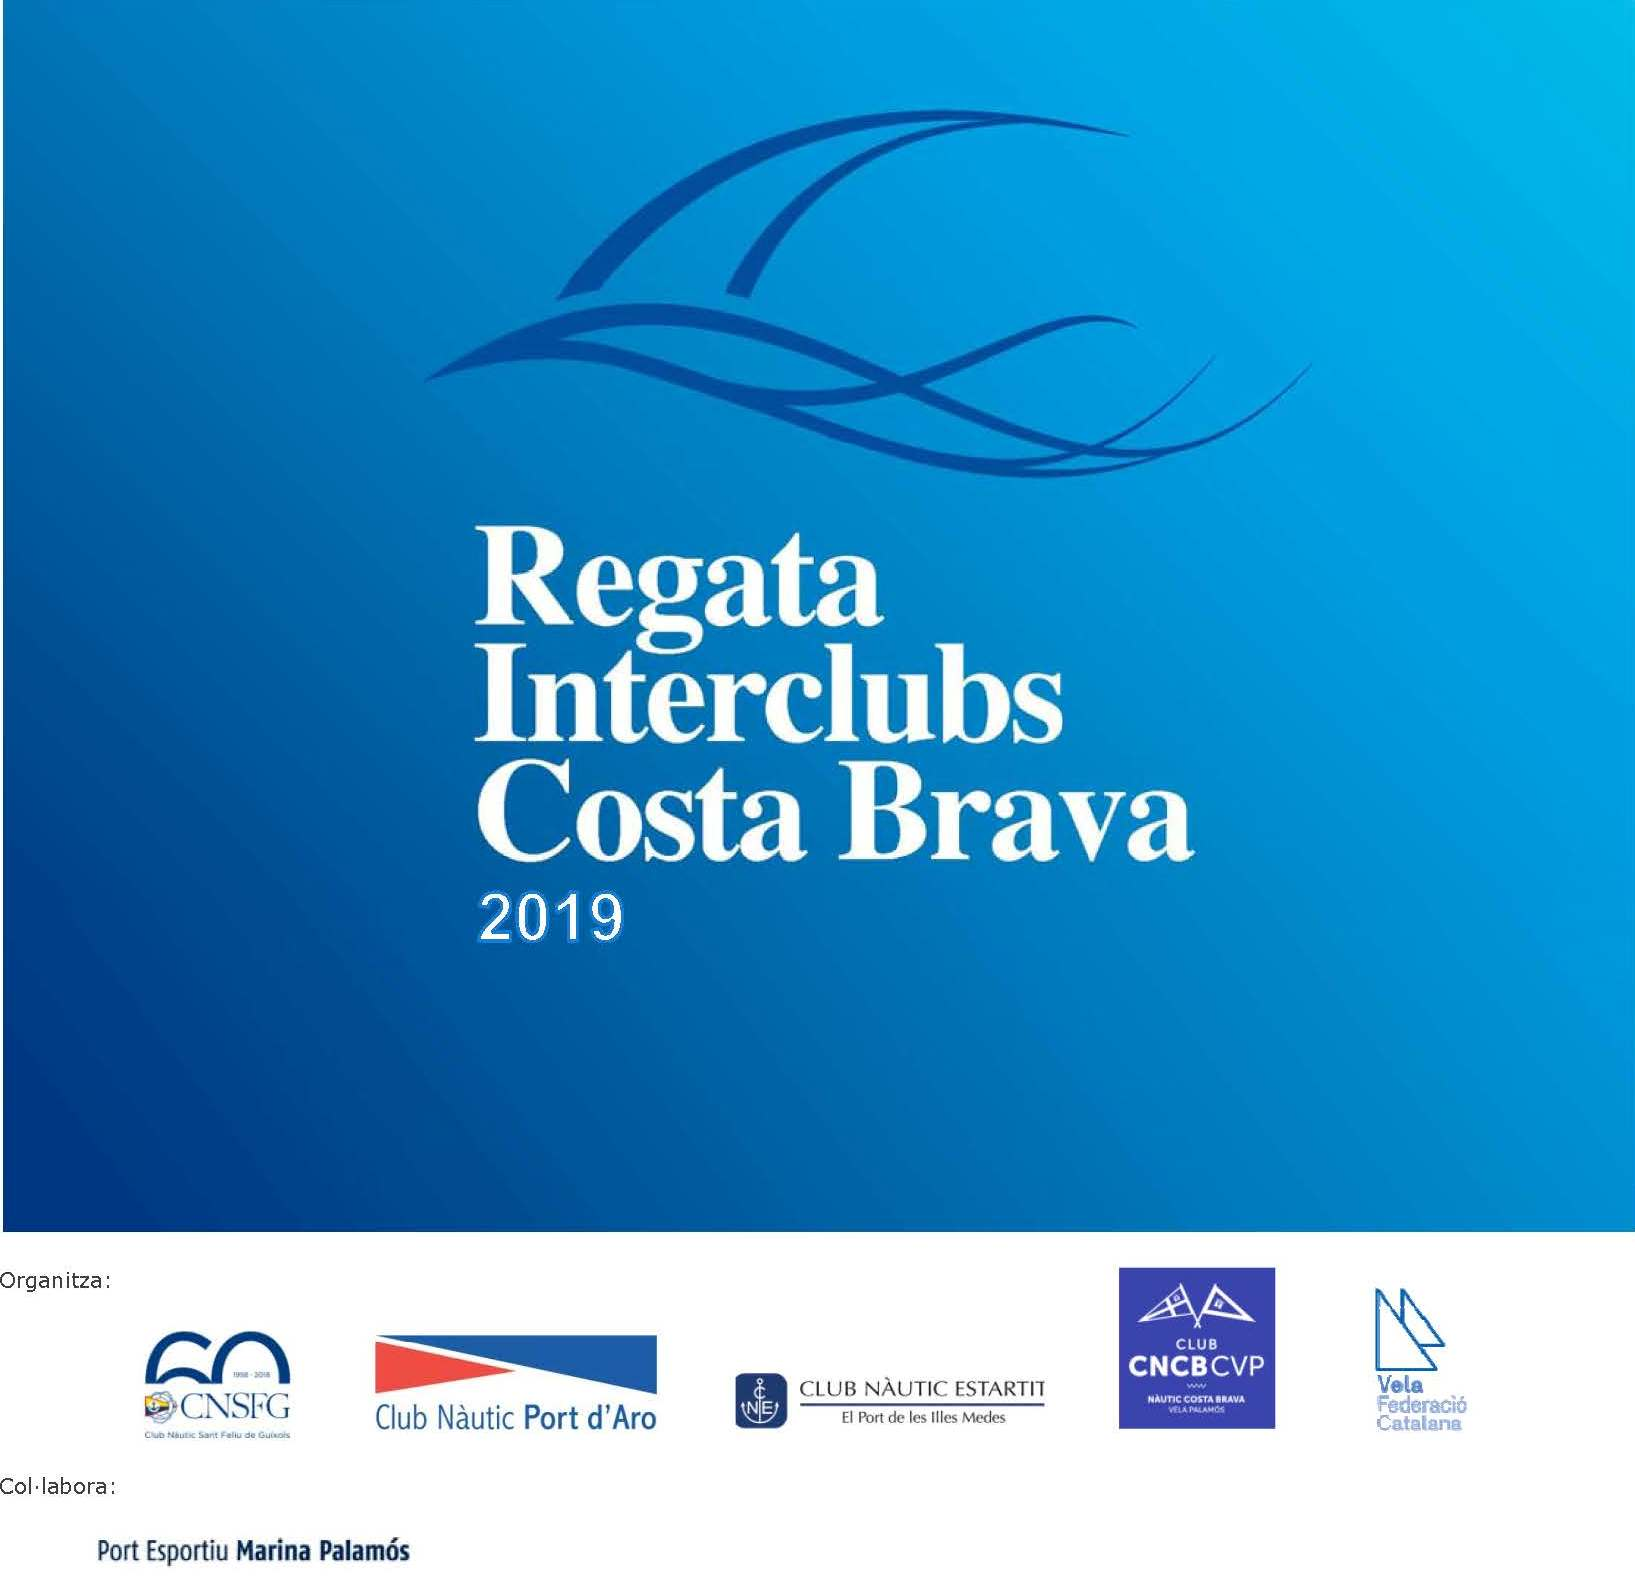 Cartell Interclubs Costa Brava 2019 - logo